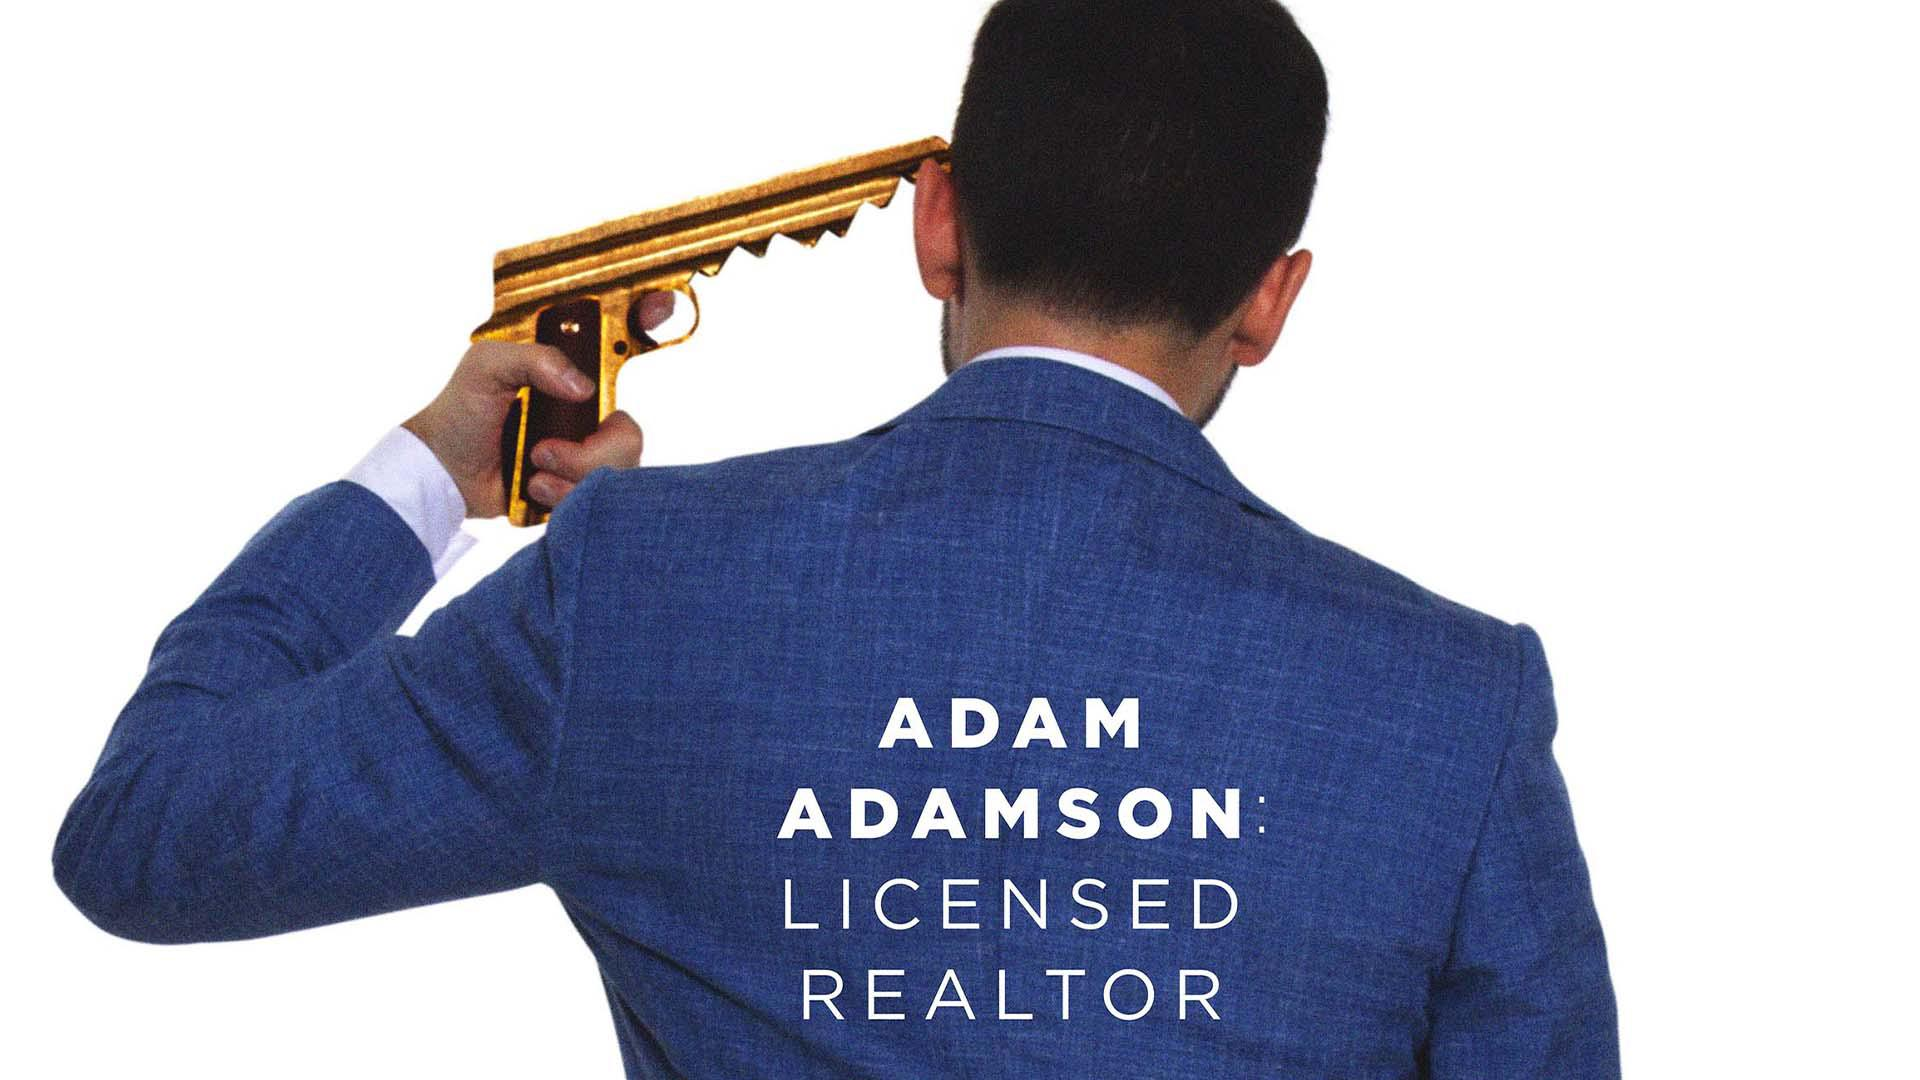 Adam Adamson: Licensed Realtor